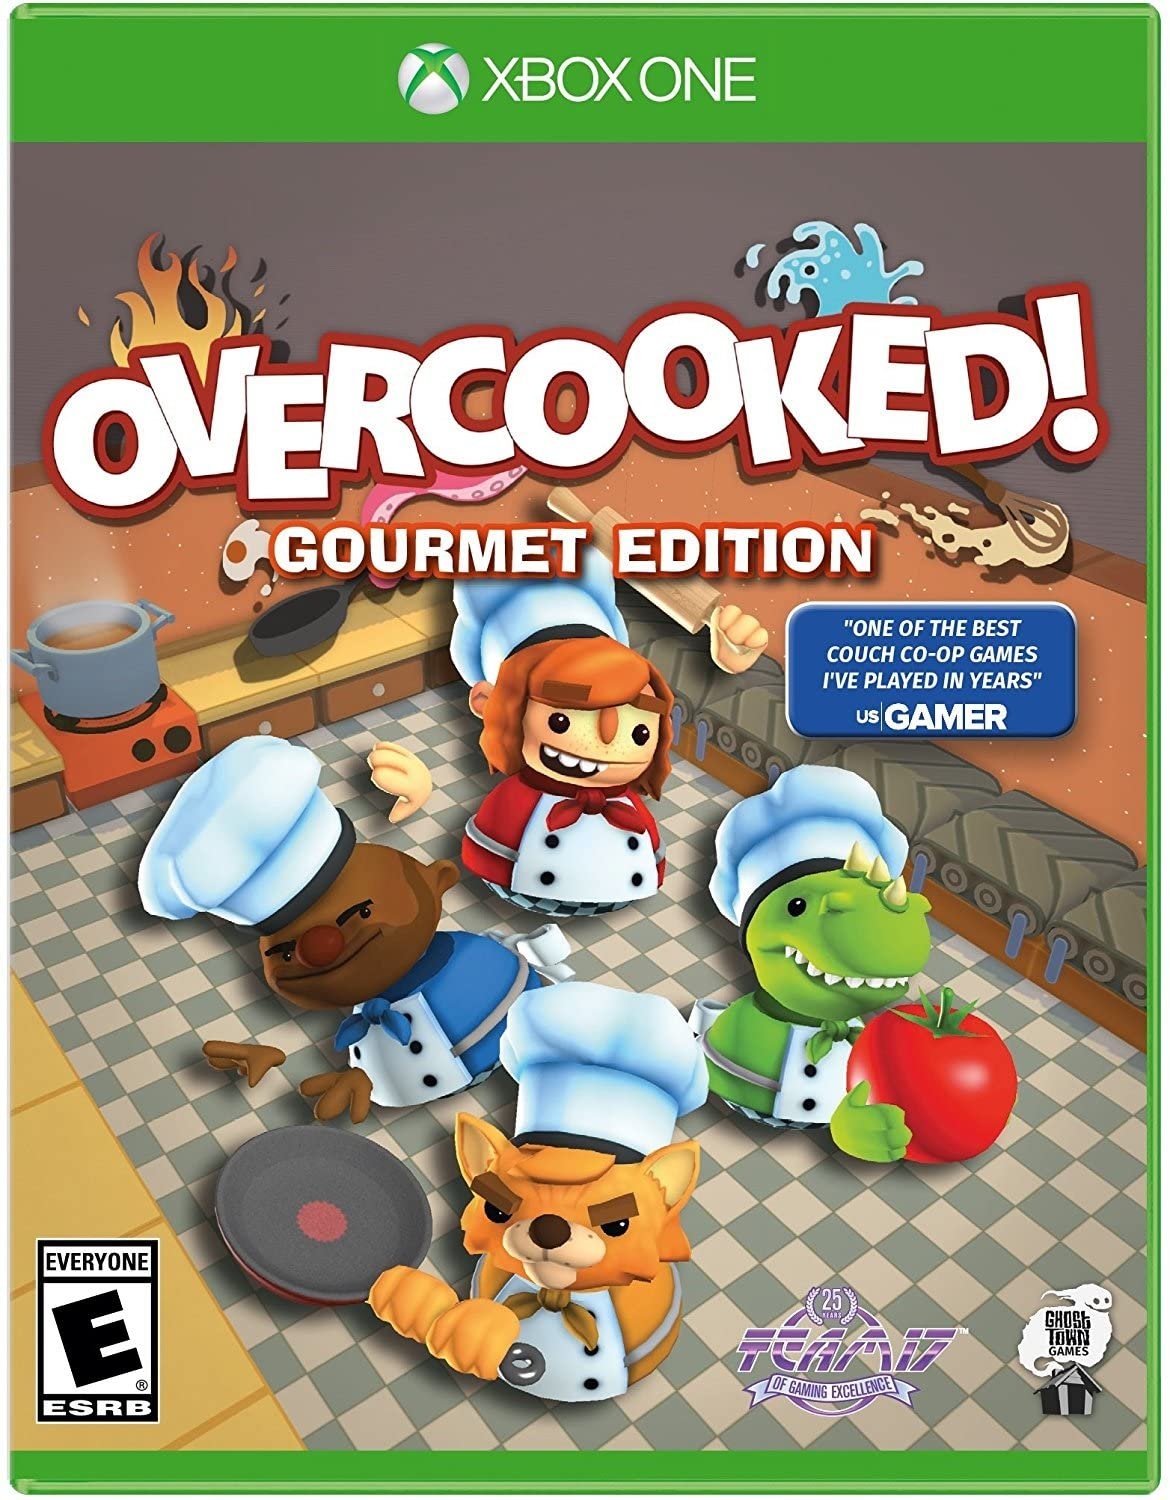 Rent Overcooked Gourmet Edition Xbox One Game Games To Go